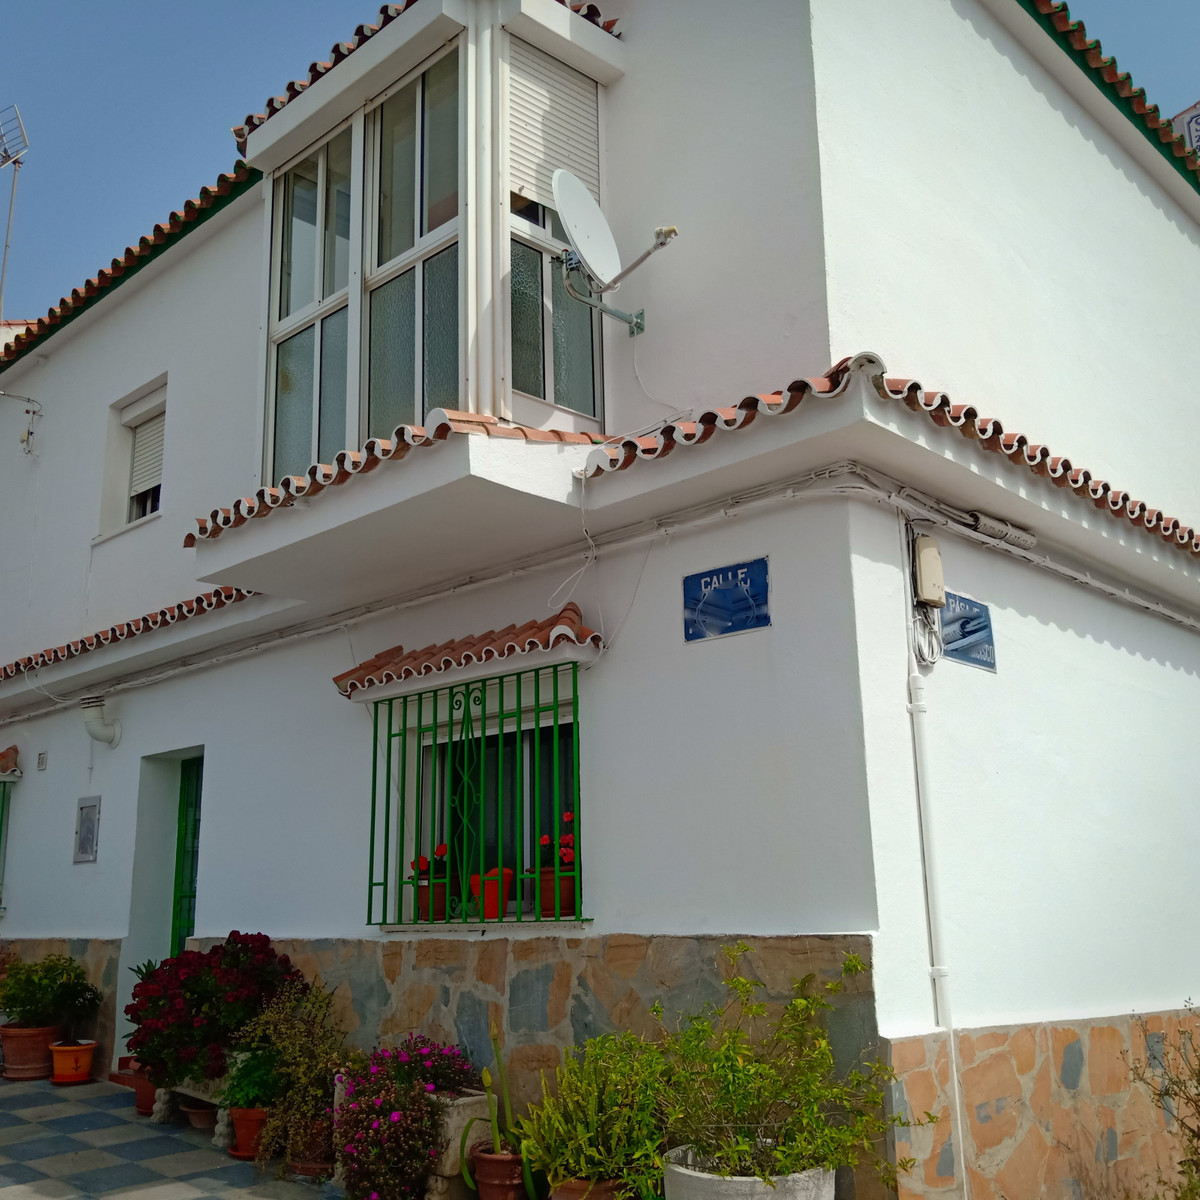 Semidetached townhouse in the commercial area of Pueblo Nuevo. Two storey 5 bedroom house in good co,Spain